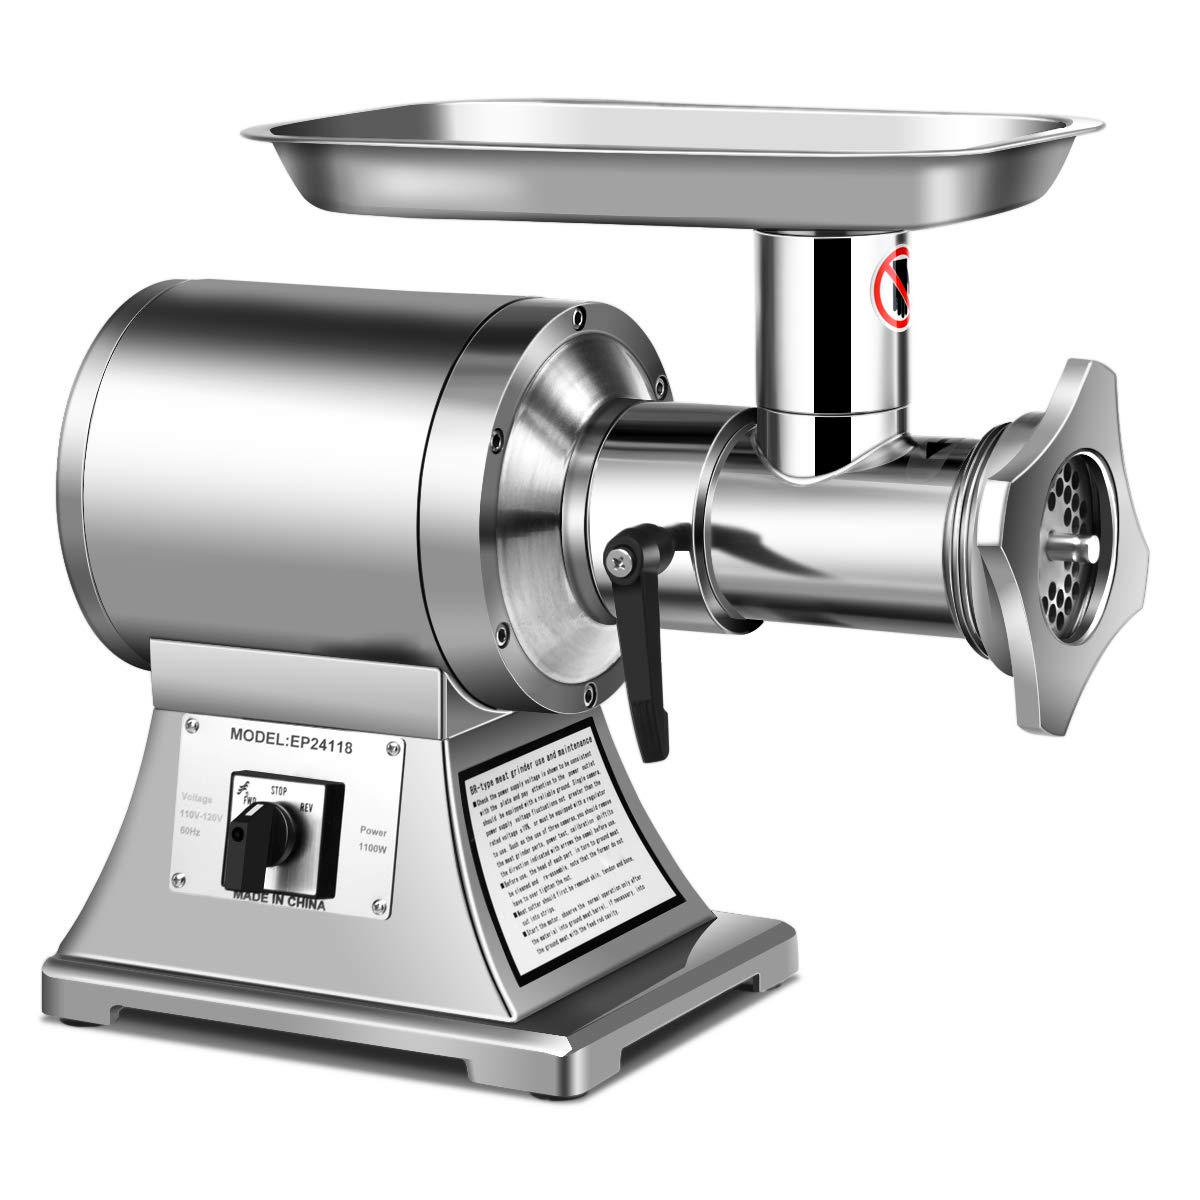 Tangkula Electric Meat Grinder, 1.5HP 1100W Meat Mincer, Stainless Steel Food Grinder Maker with 2 Cutting Plates & 2 Cutting Blades(Silver) by Tangkula